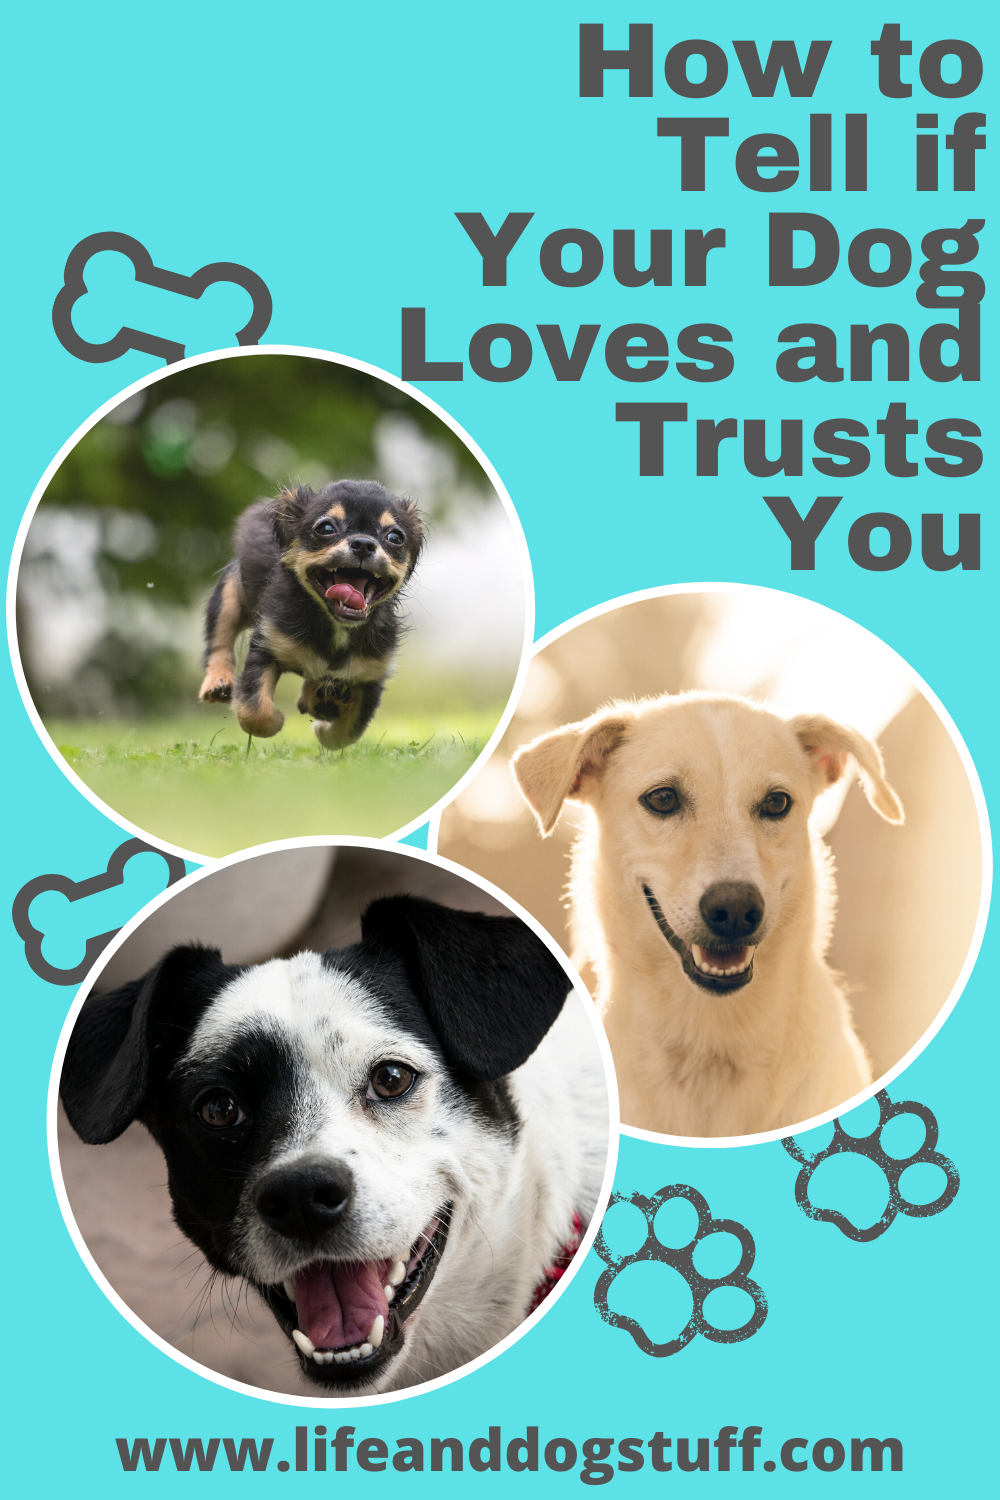 How to Tell if Your Dog Loves and Trusts You. #dogs #doglovers #dogtips